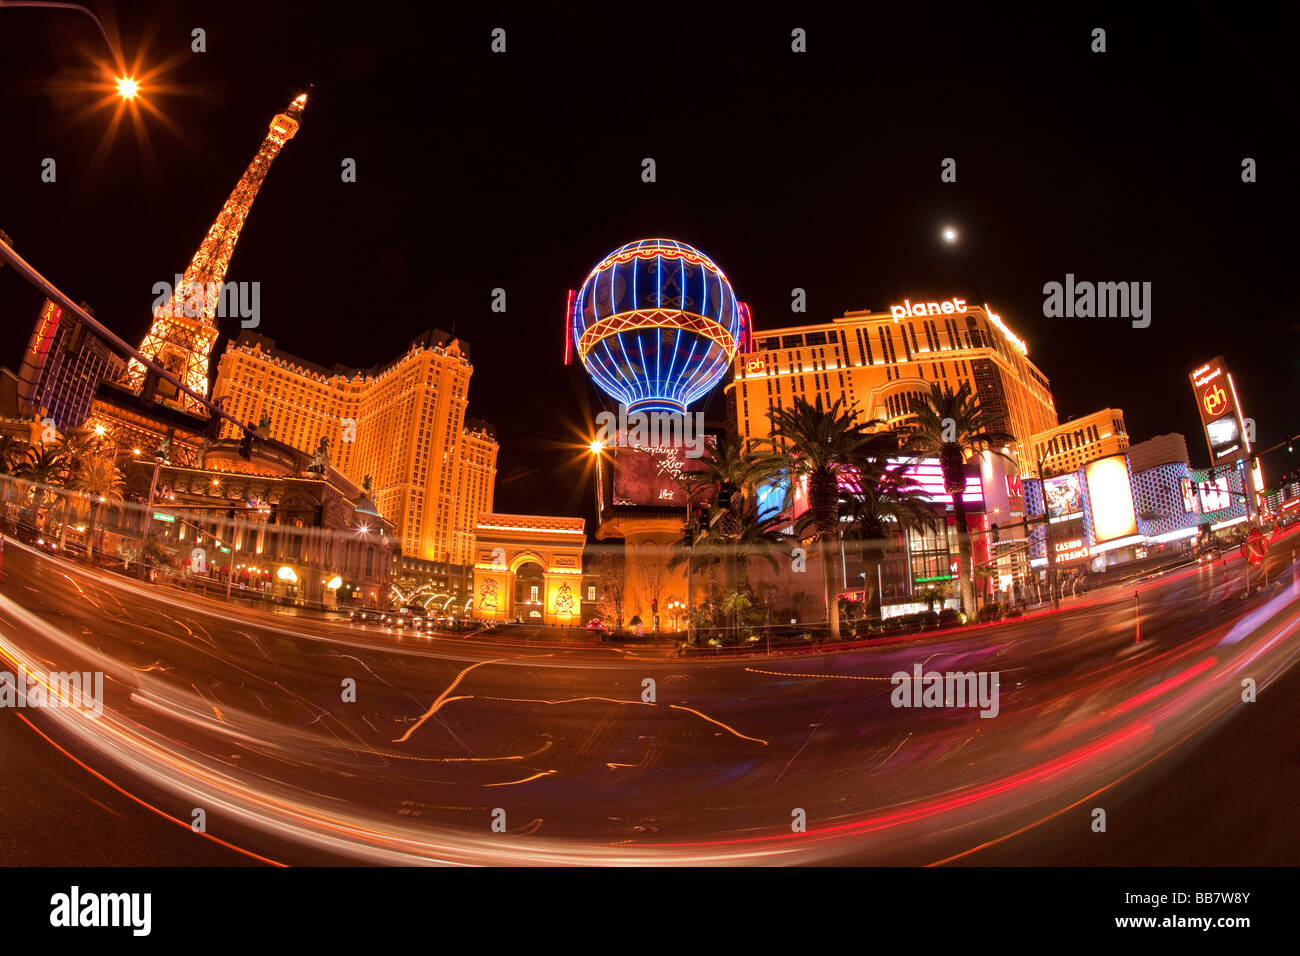 Location de légèreté et d'illuminations de casino à Las Vegas au Nevada USA Photo Stock